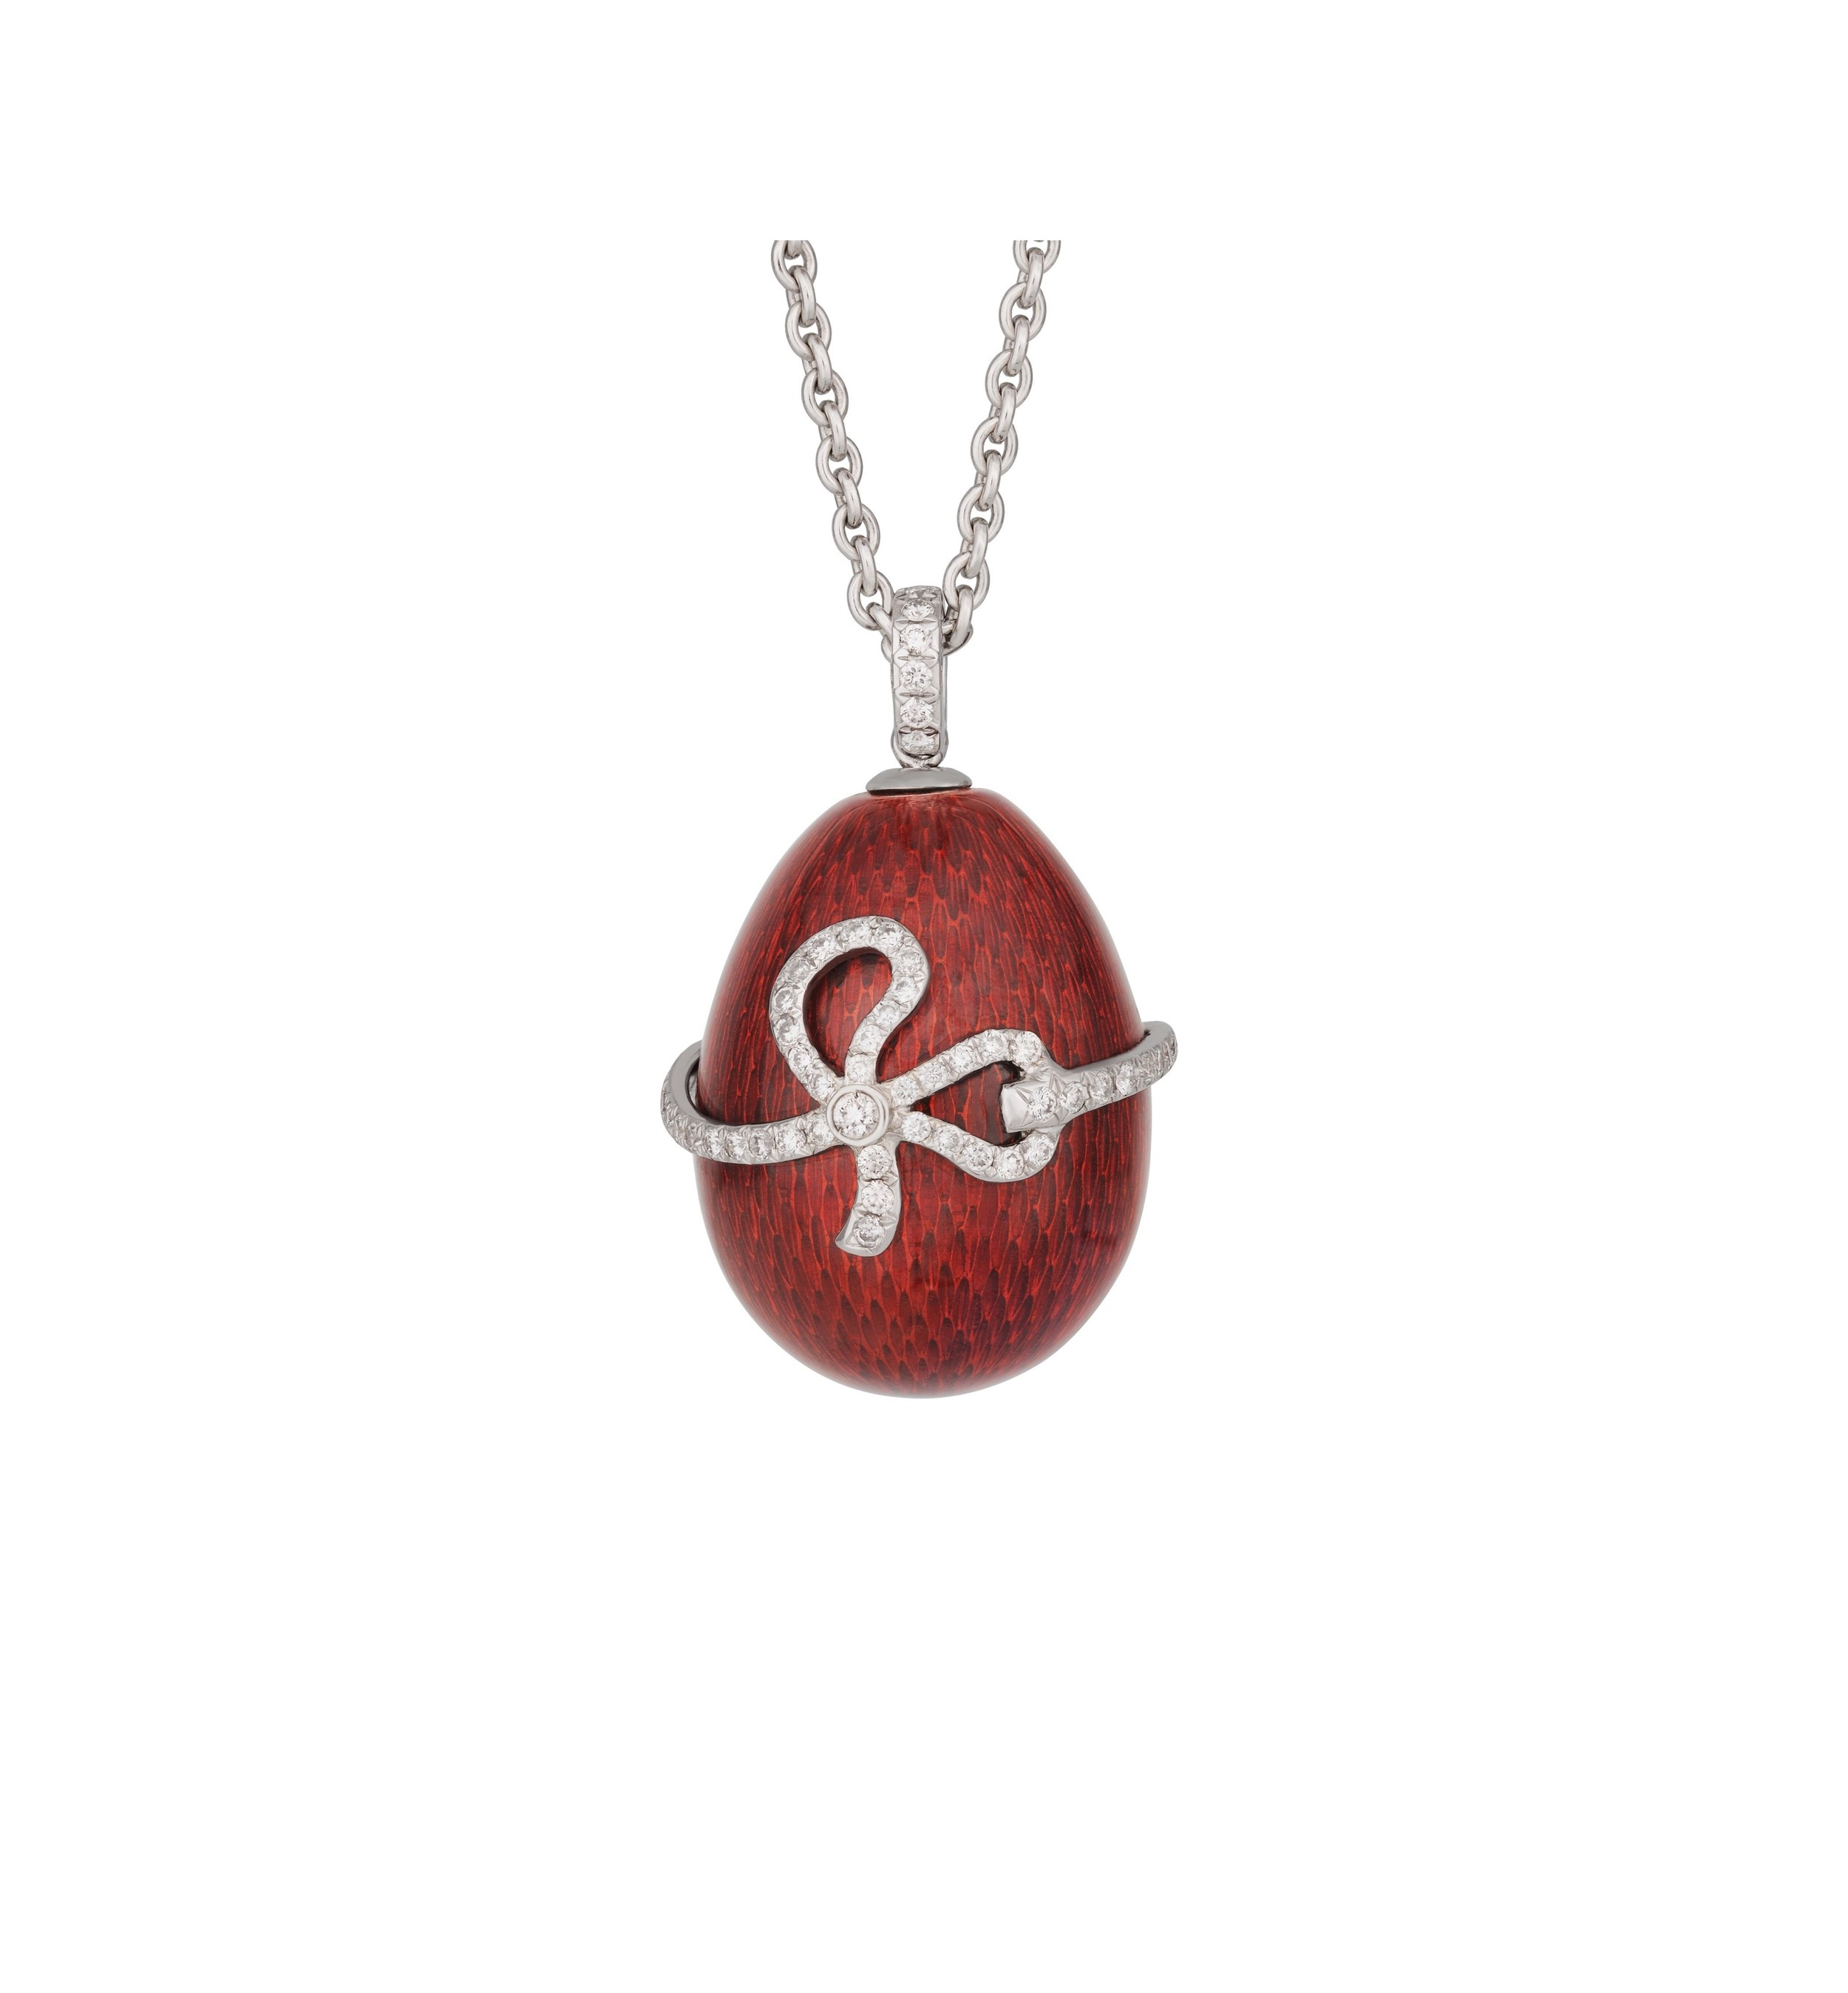 Faberge 'Oeuf Sophie' egg pendant in red enamel and diamonds. $12,750